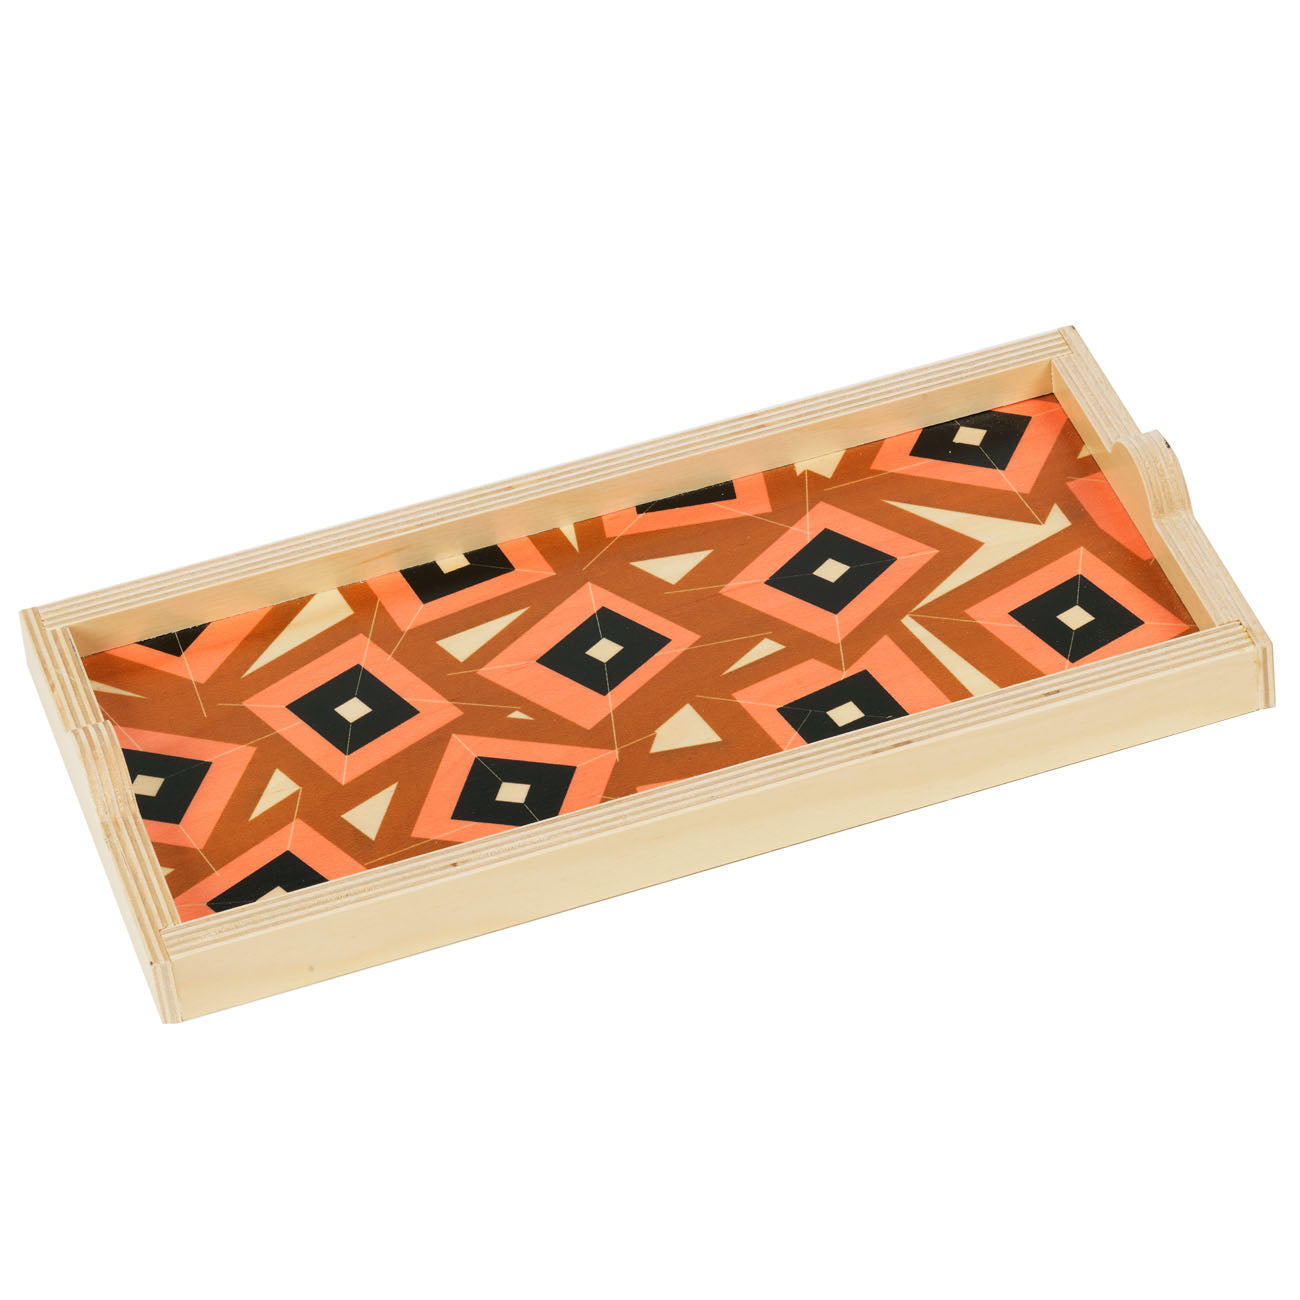 alma peach mini tray - NEW for Fall/Holiday 2018!